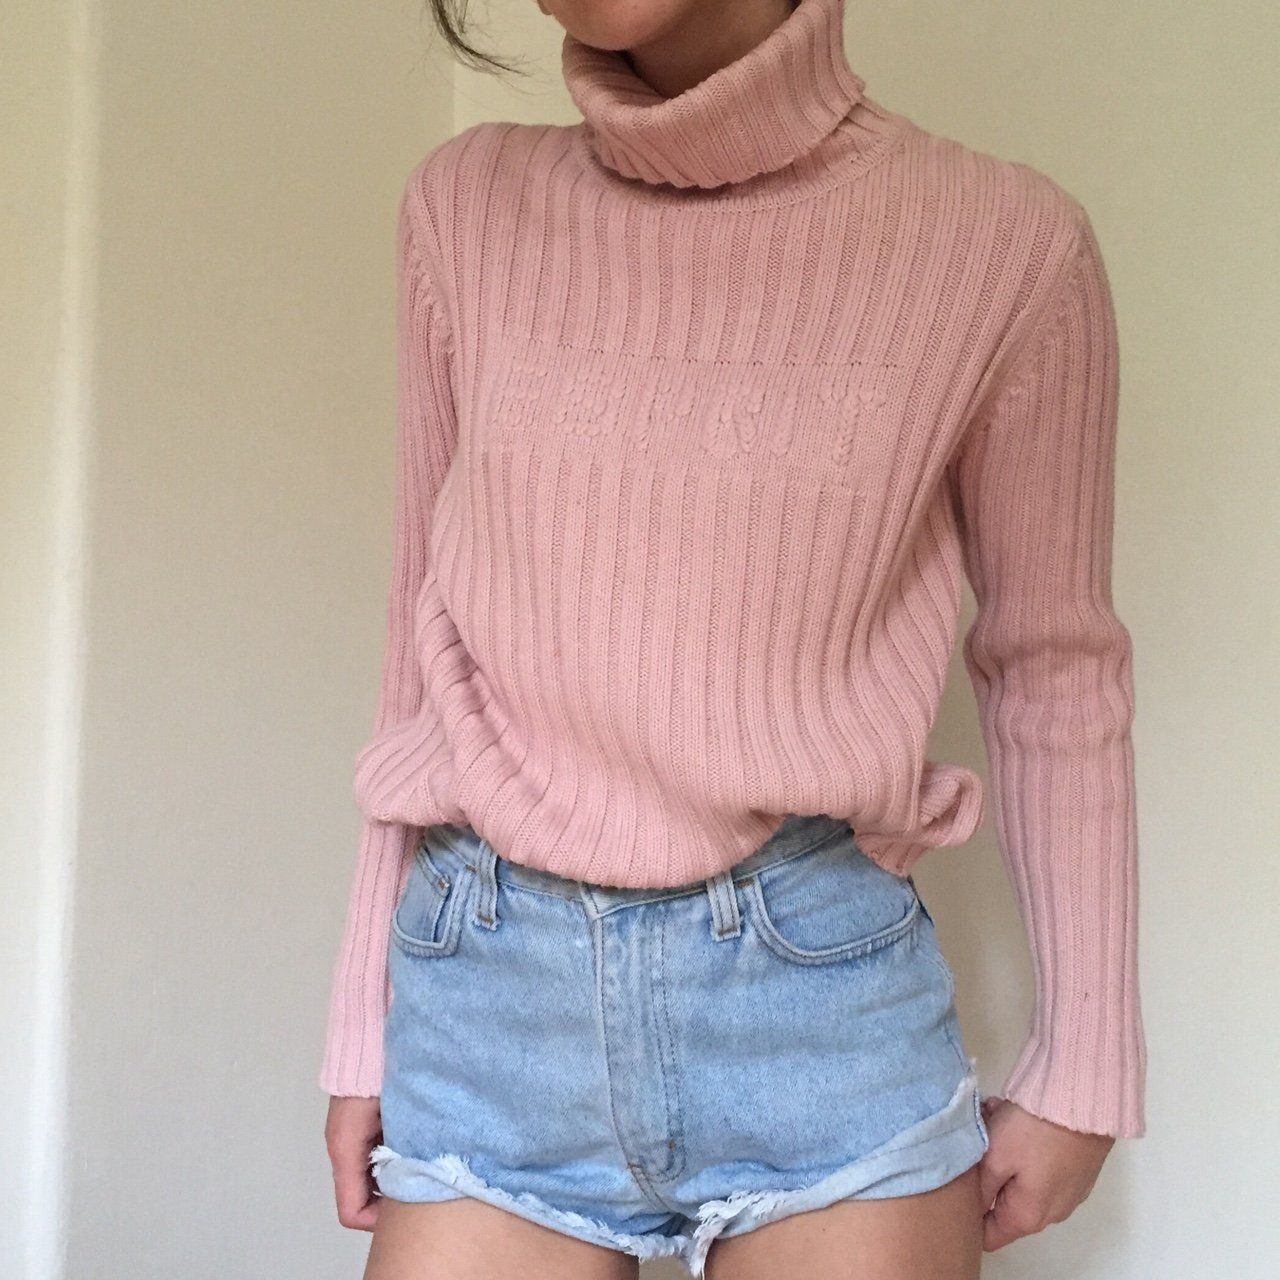 02fcb37b4 Esprit baby pink ribbed turtleneck sweater 💗 Vintage roll neck sweater in  the most beautiful shade of pastel pink. Would fit sizes 6 8 10.